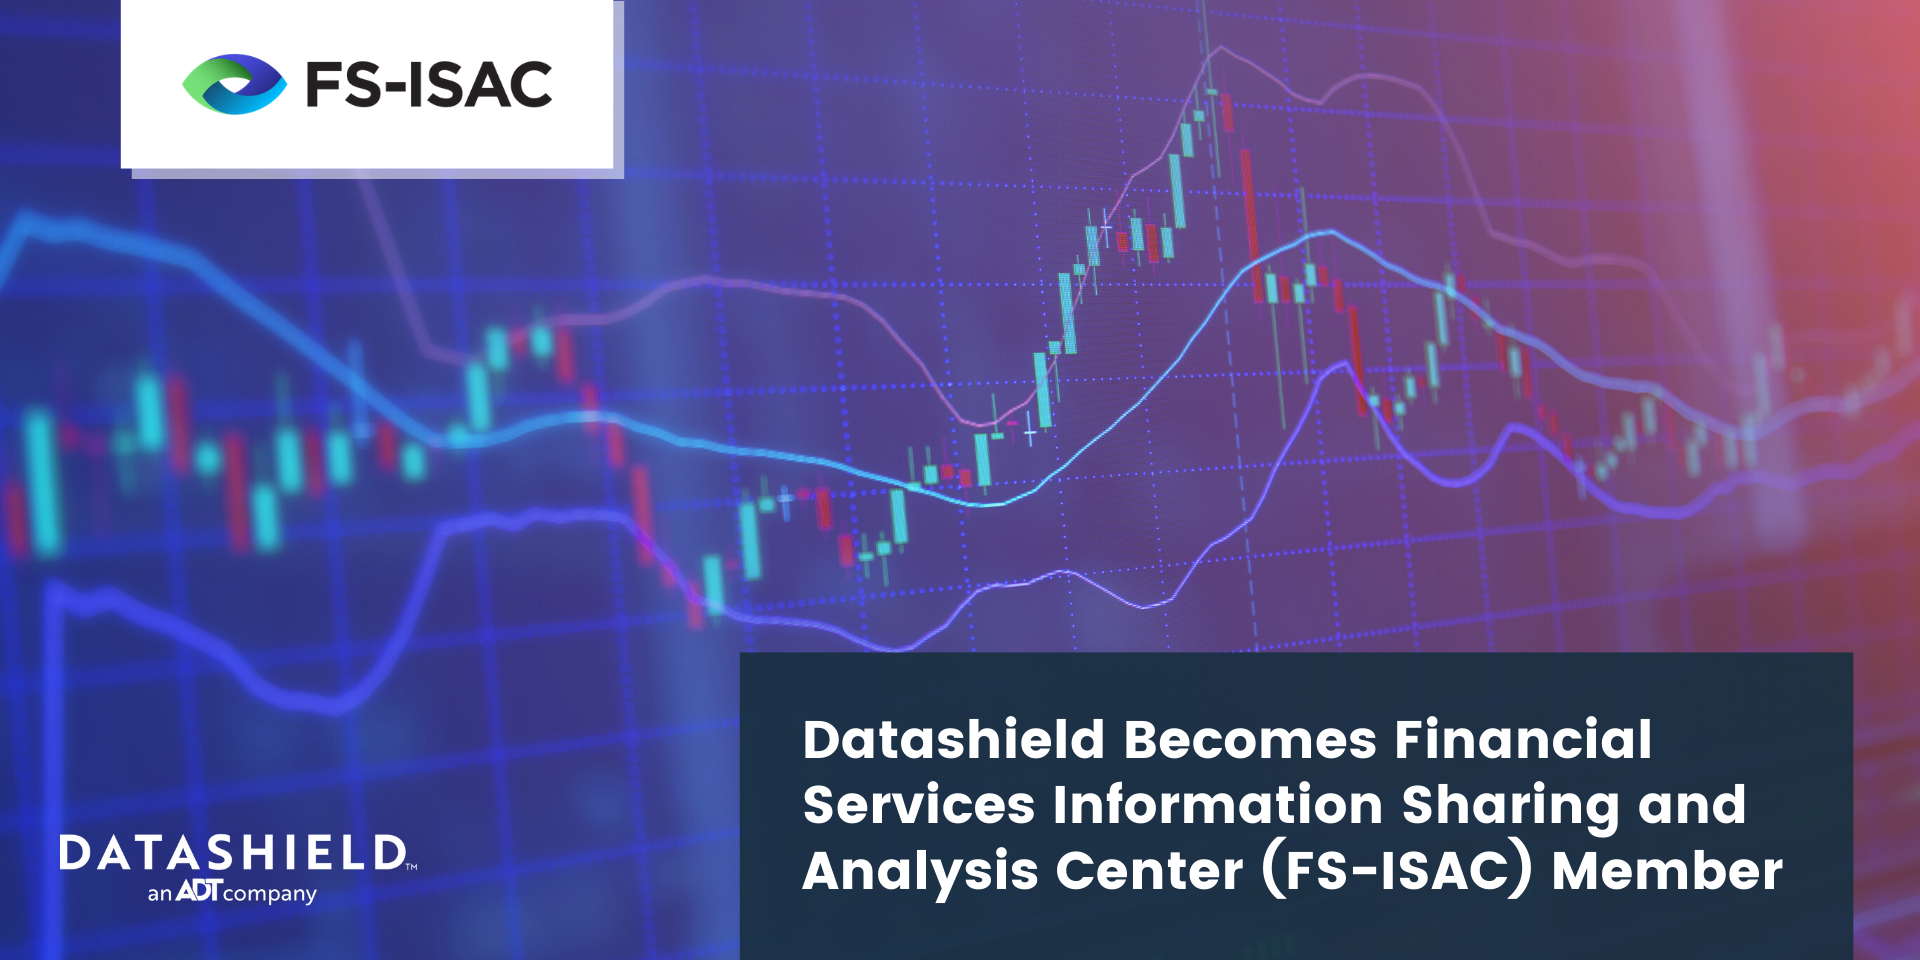 Datashield Becomes Financial Services Information Sharing and Analysis Center (FS-ISAC) Member (1)